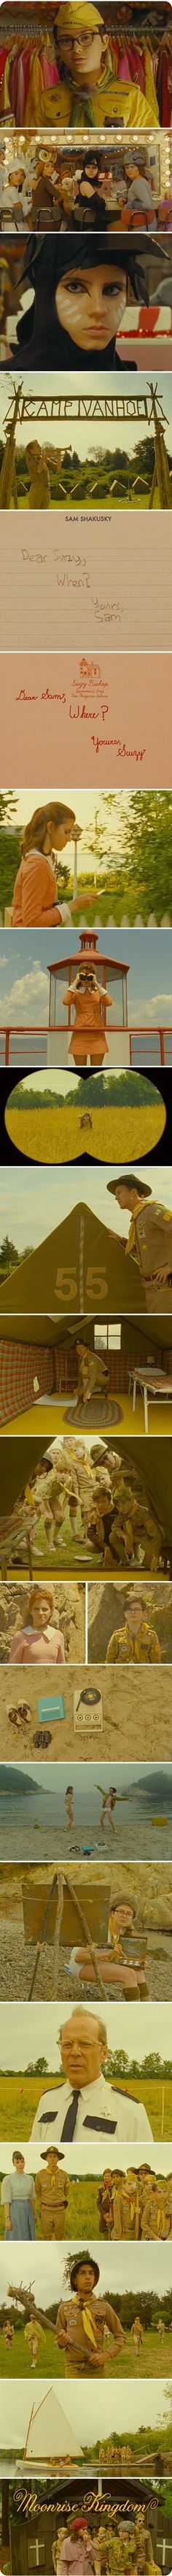 // Moonrise Kingdom